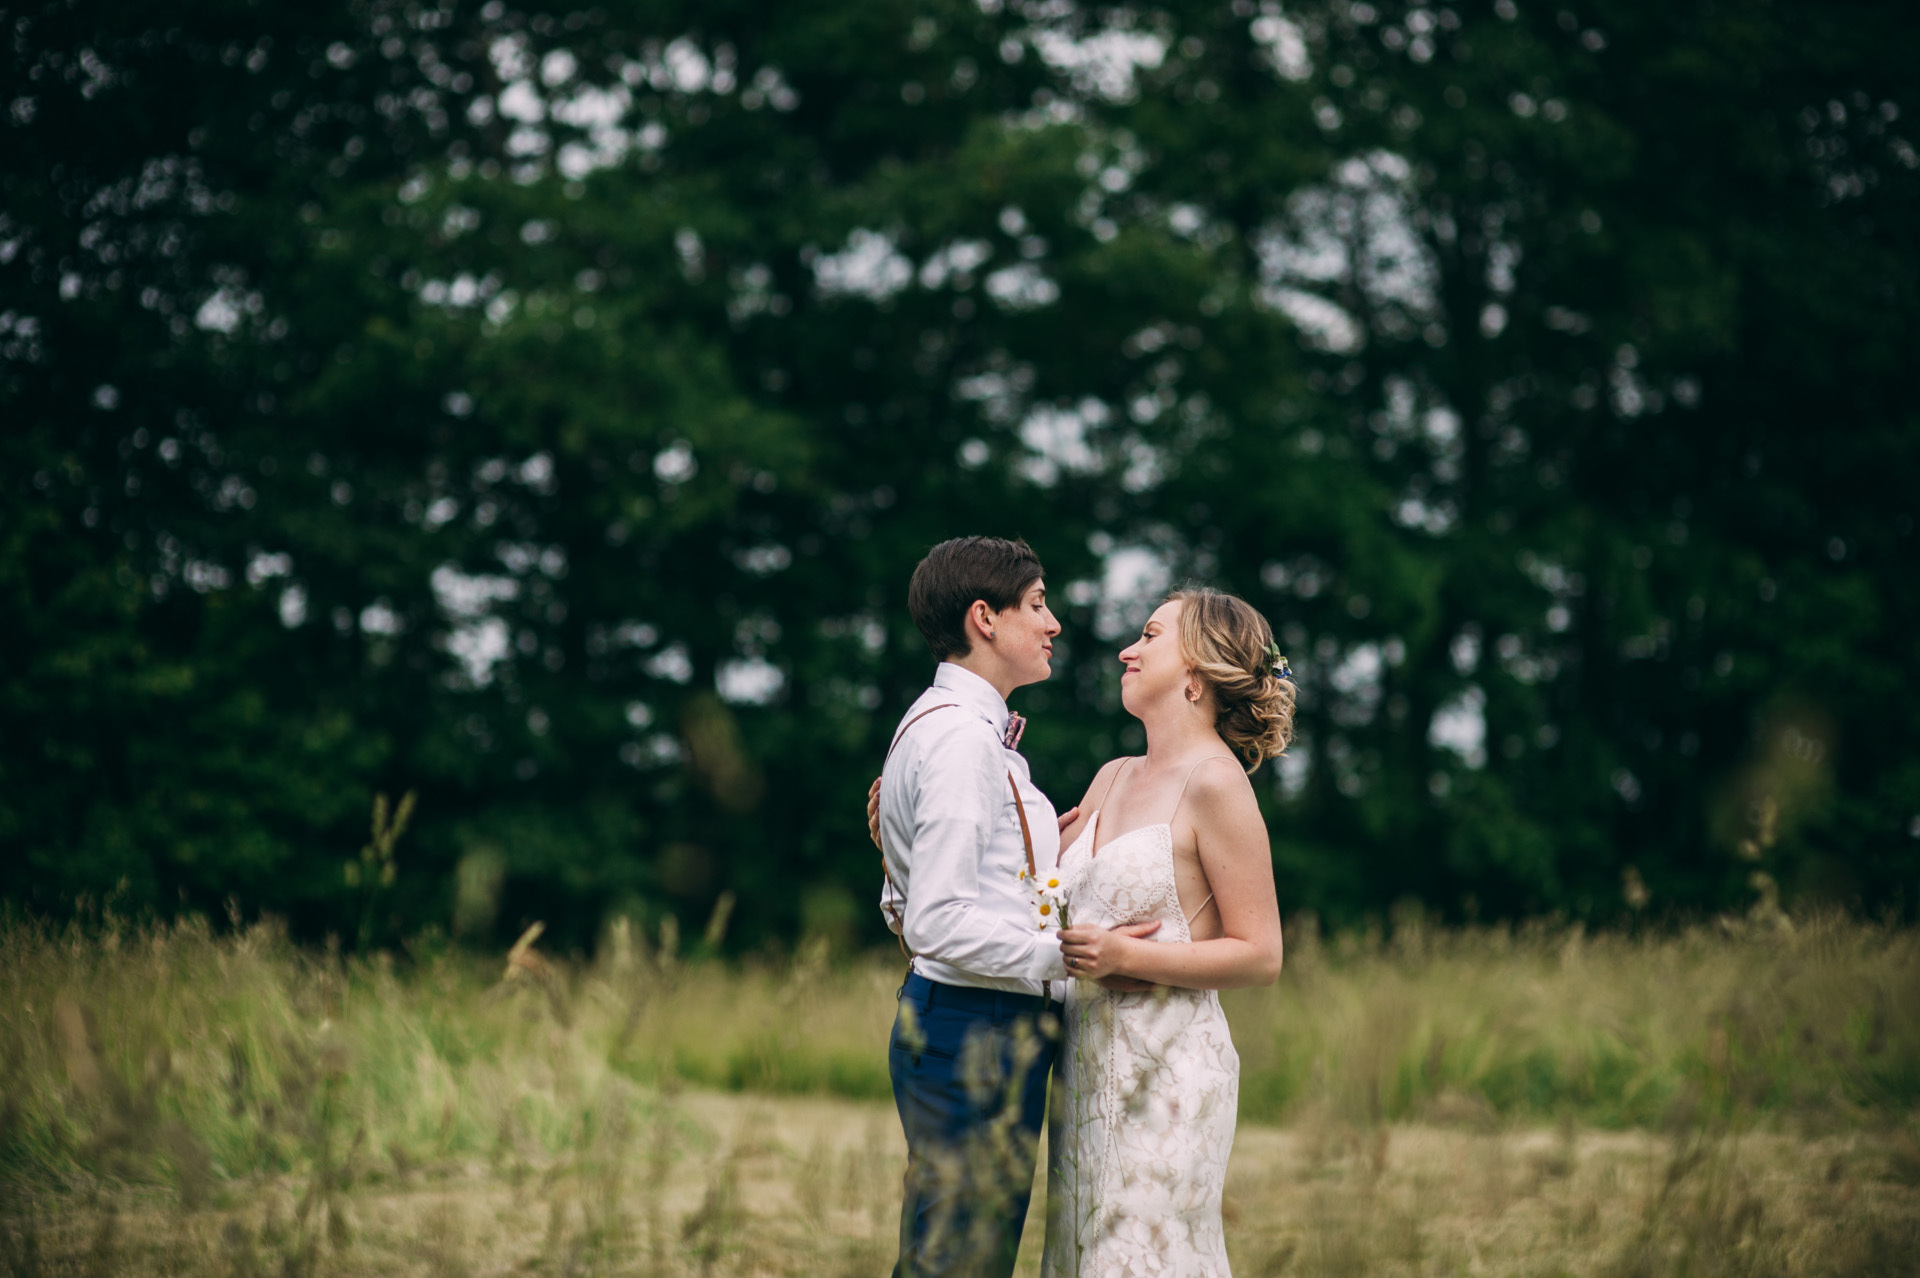 broadturn-farm-wedding-60